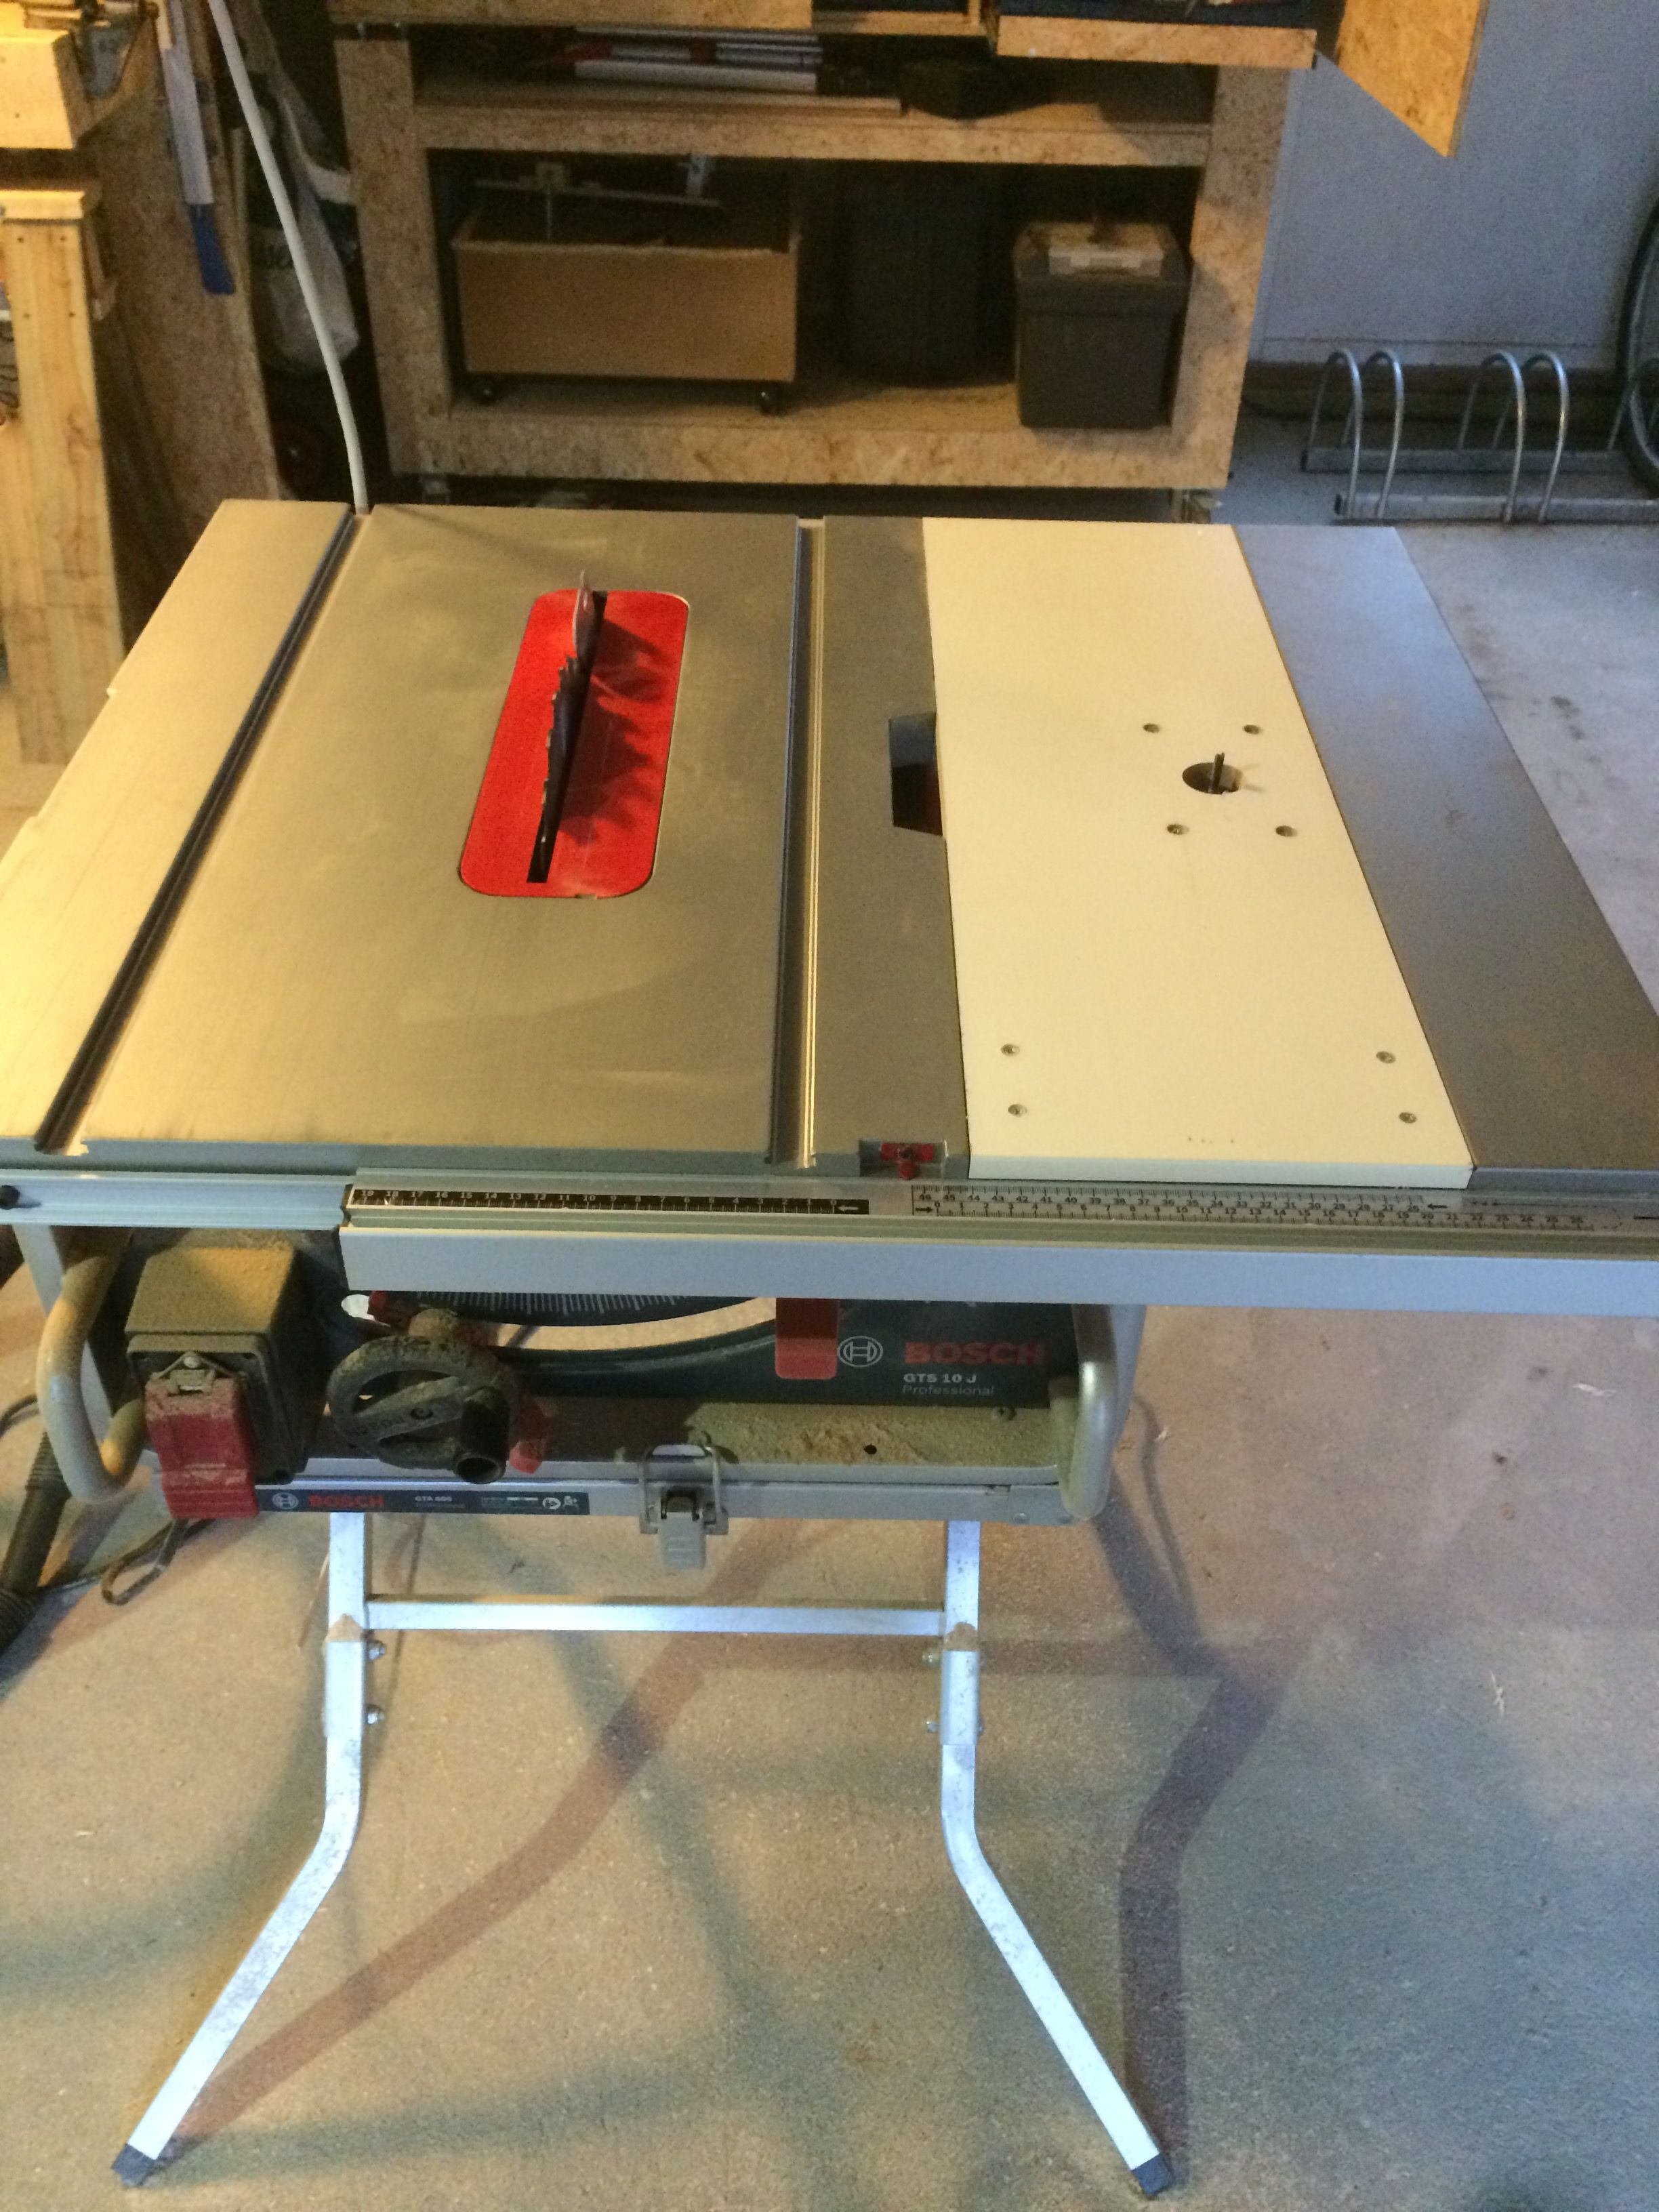 Router insert in bosch table saw tabel saw stationrouter insert router insert in bosch table saw greentooth Choice Image